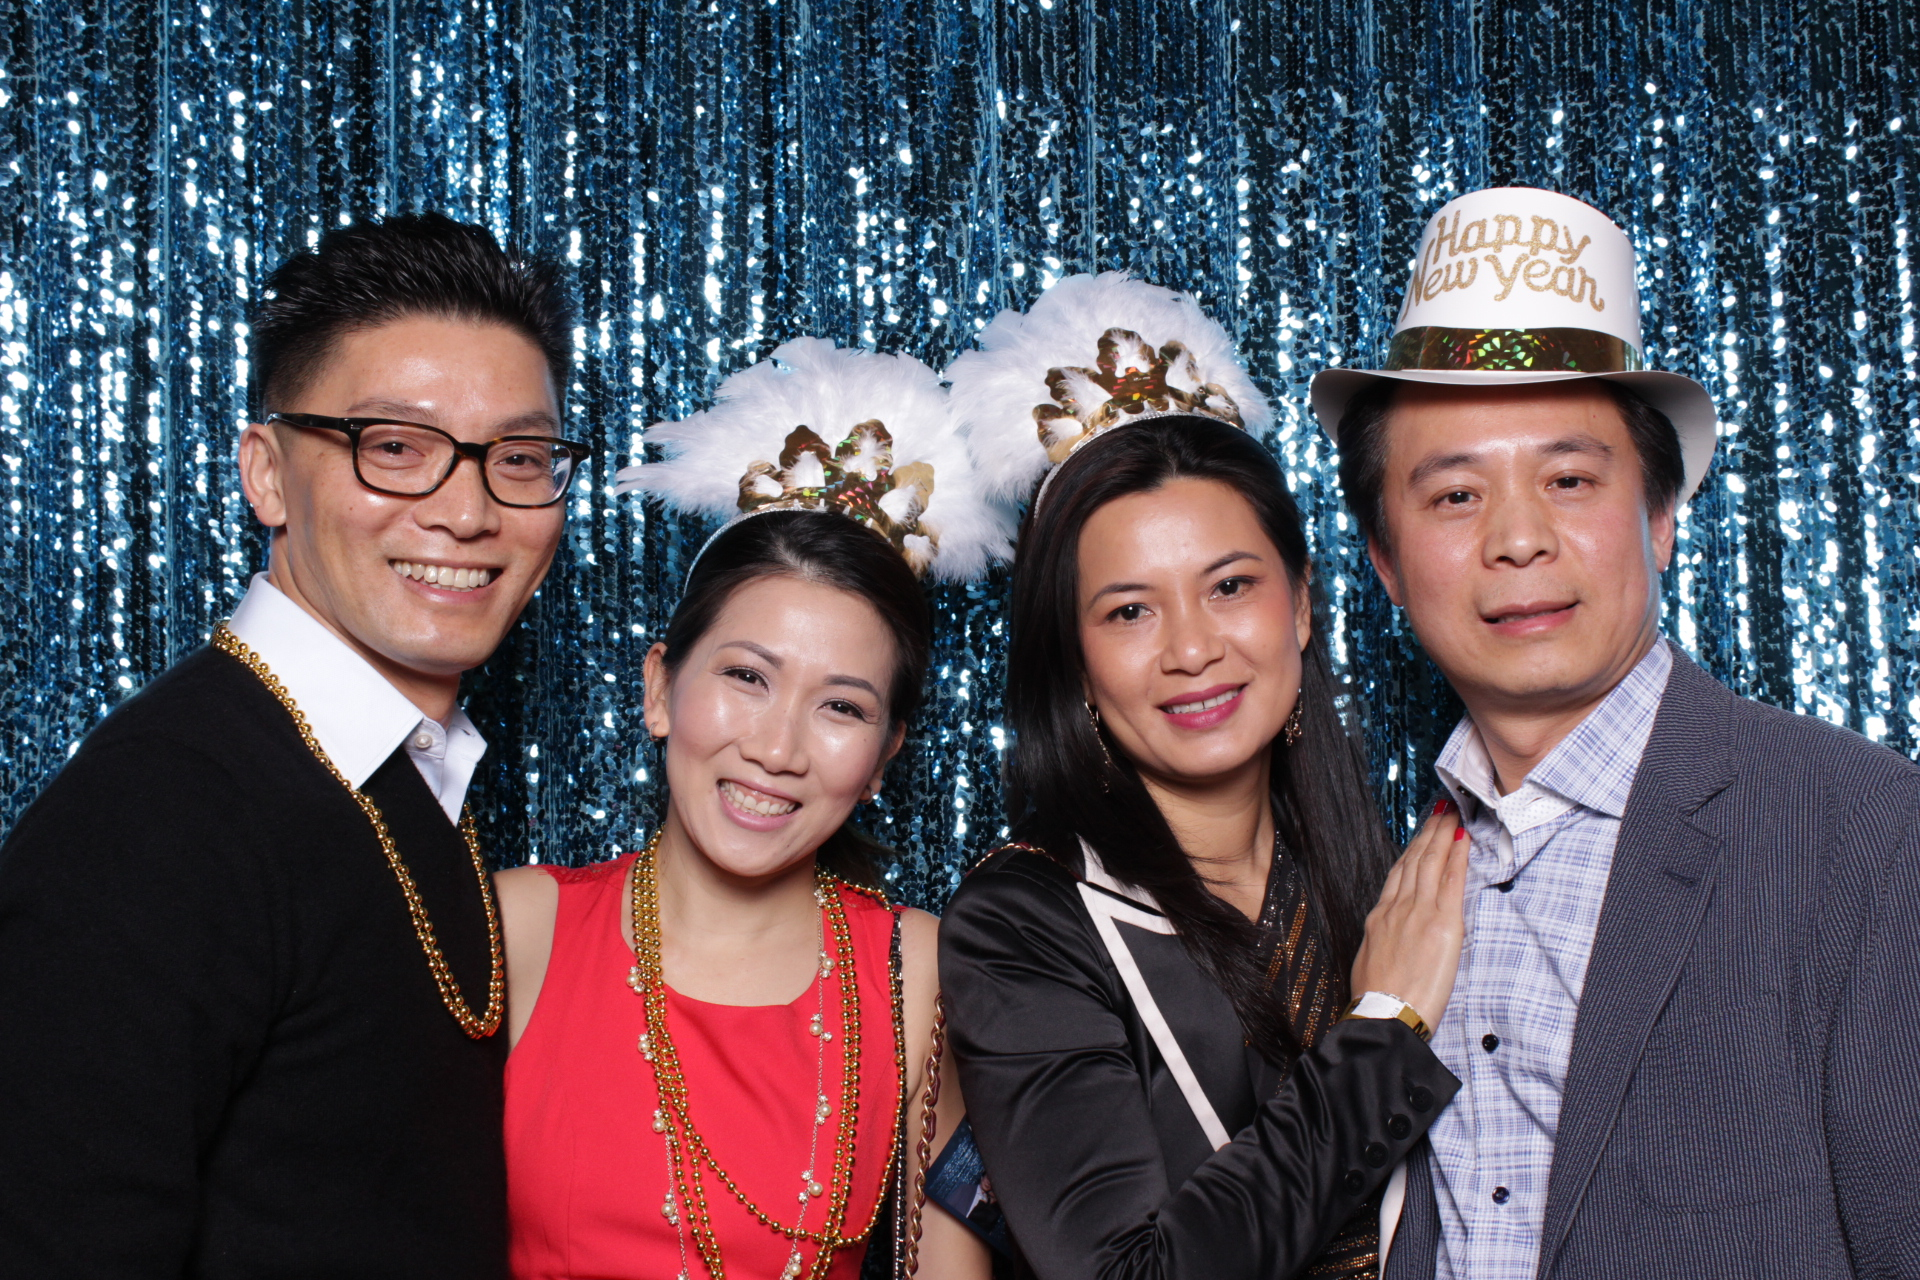 MGM NATIONAL HARBOR | HOT PINK PHOTO BOOTH